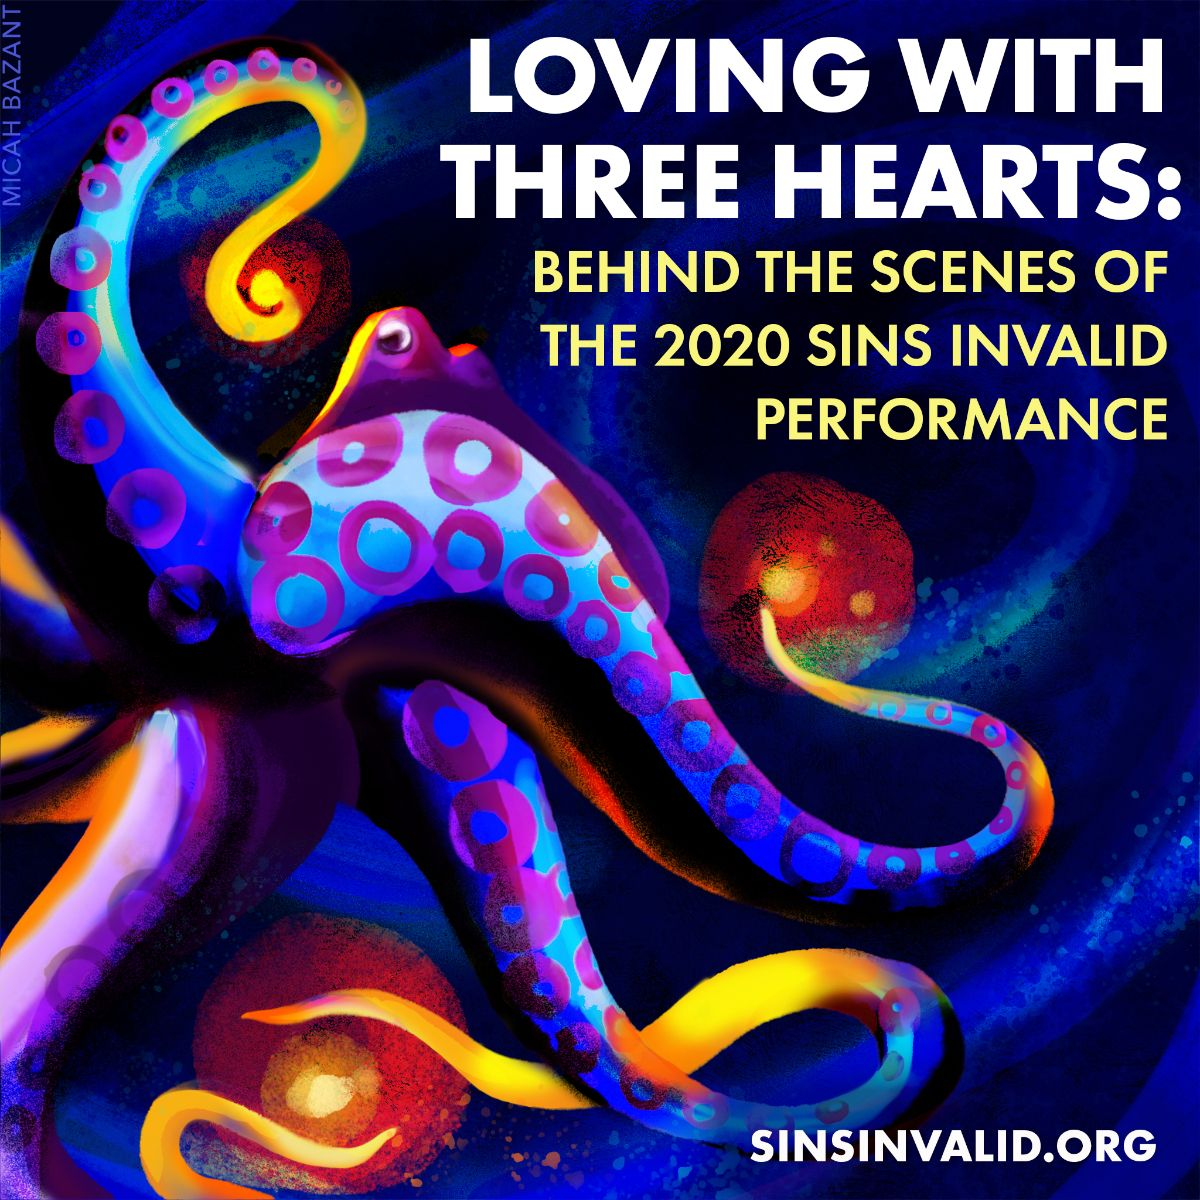 A colorfully painted octopus with curving arms rests in a floating galaxy-like background, it's tentacles glow. Text reads: Loving with Three Hearts: Behind the scenes of the 2020 Sins Invalid Performance